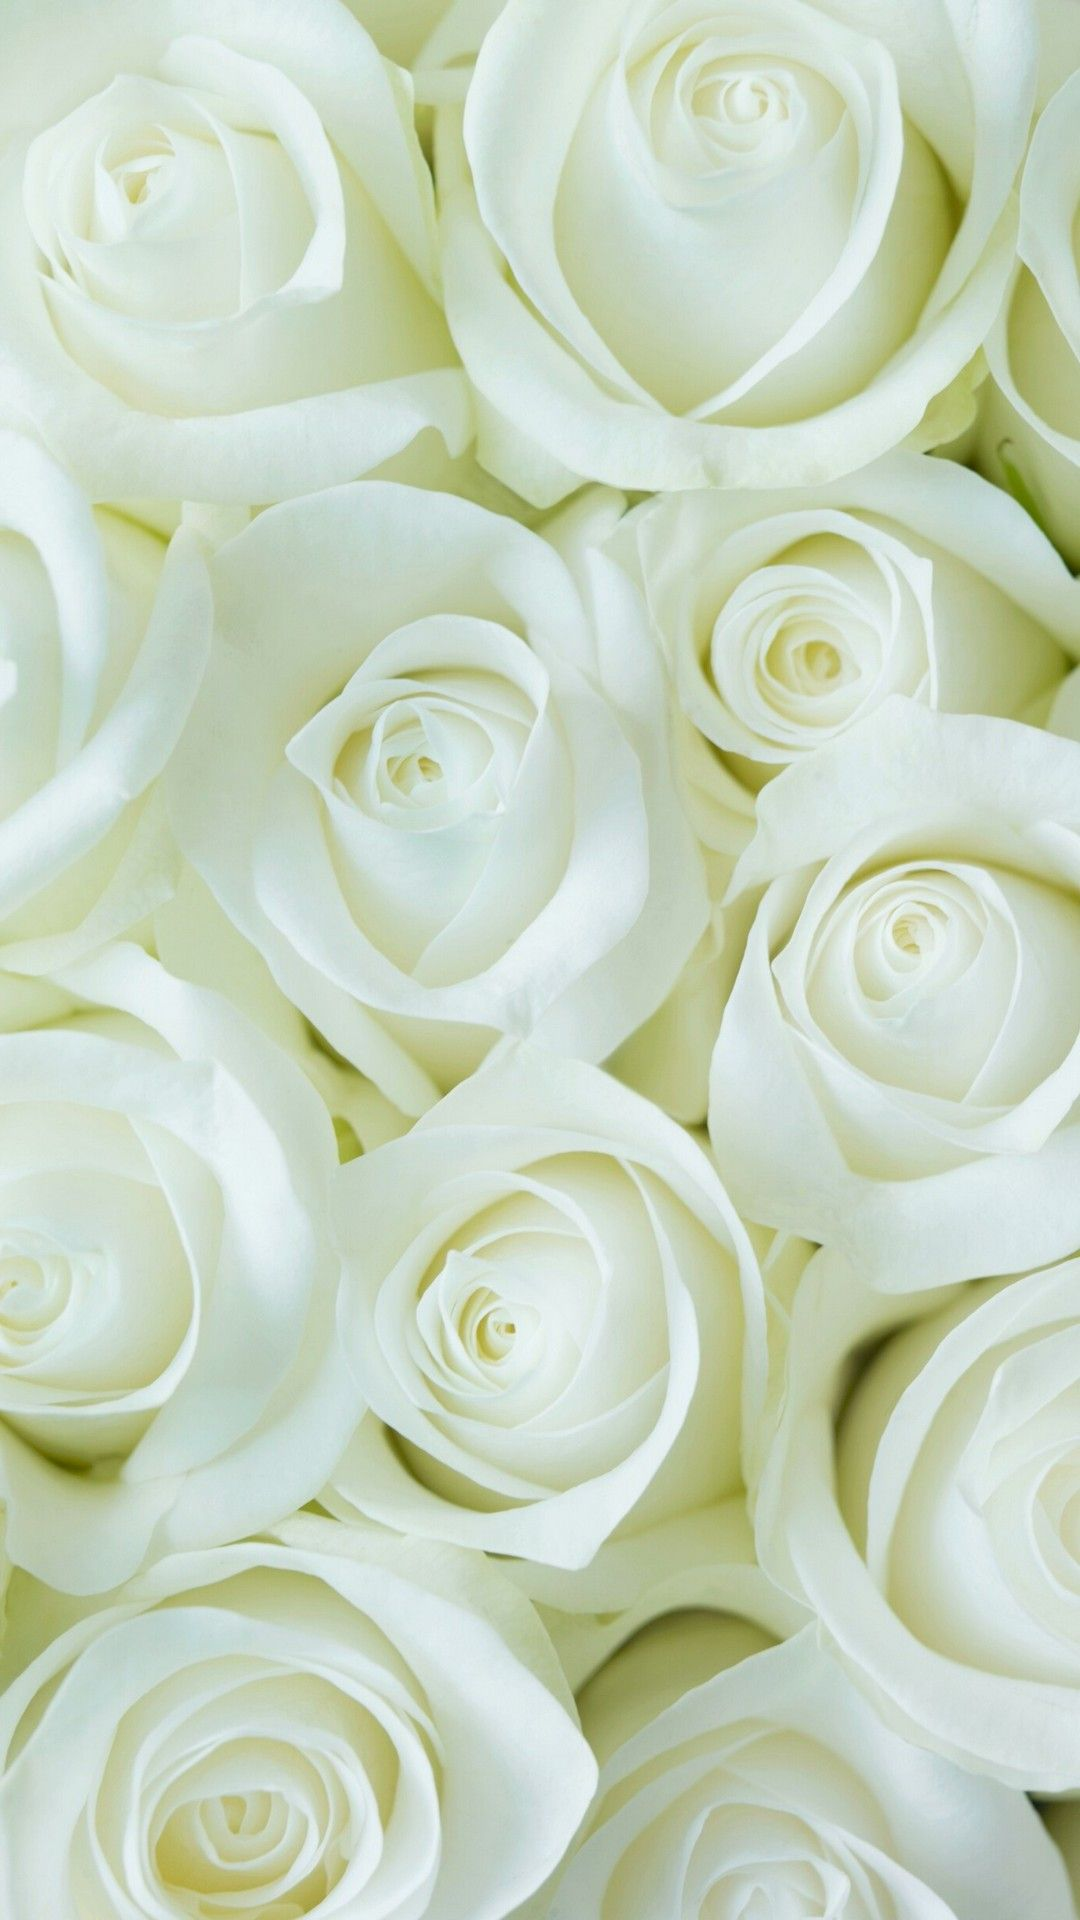 White Flower Wallpaper For Mobile Android Best HD Wallpapers in 1080x1920